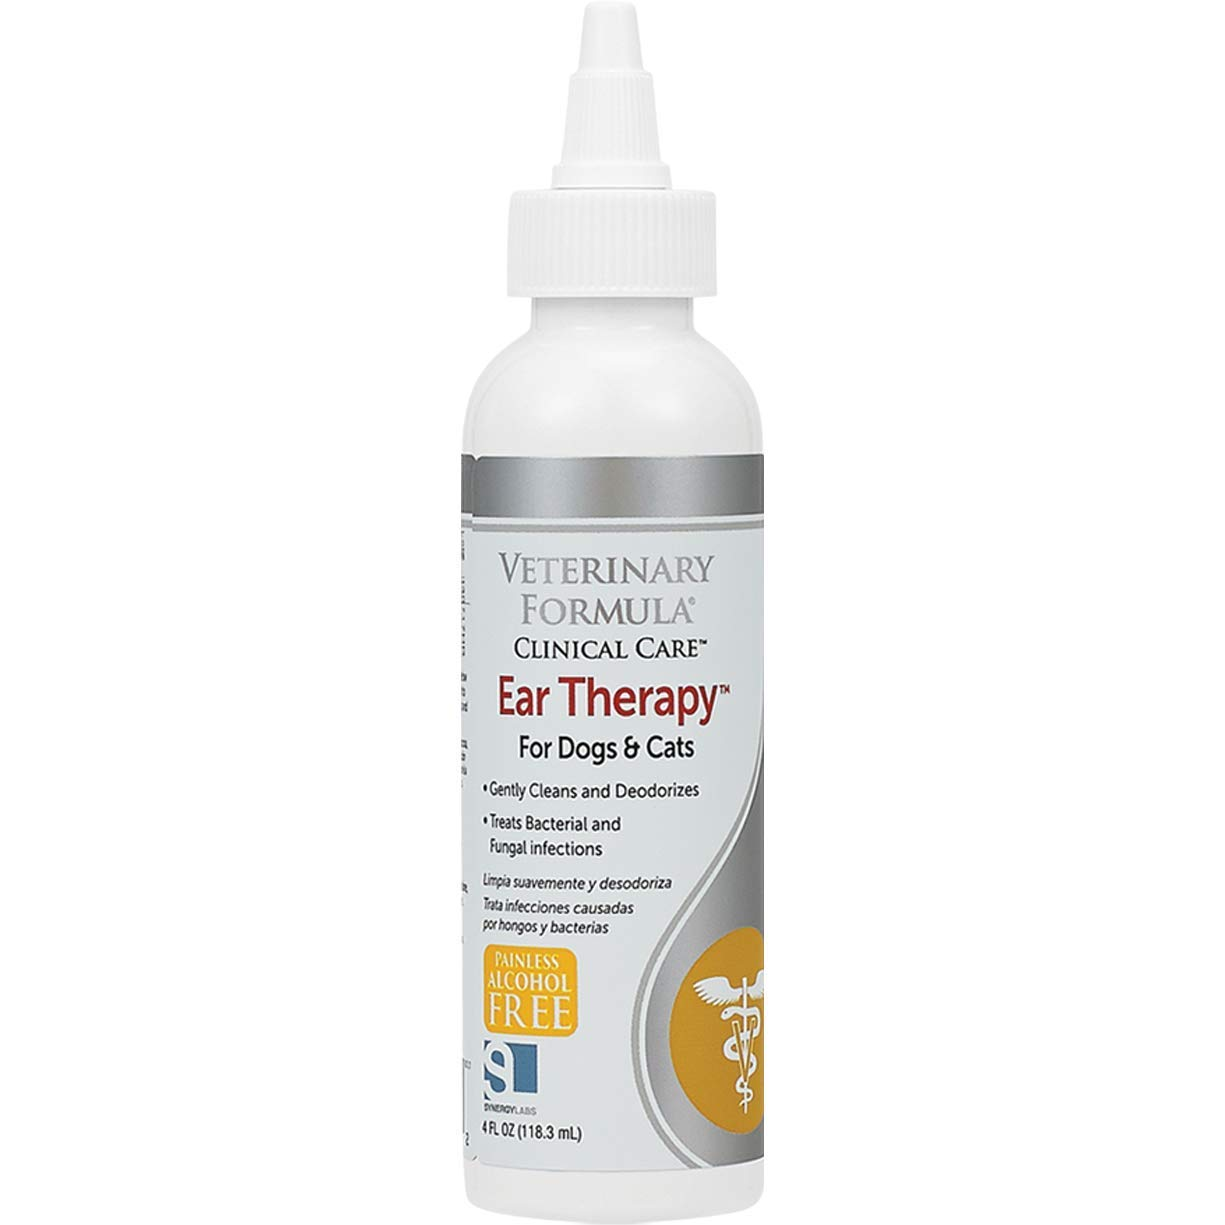 Veterinary Formula Clinical Care Ear Therapy, 4 oz.